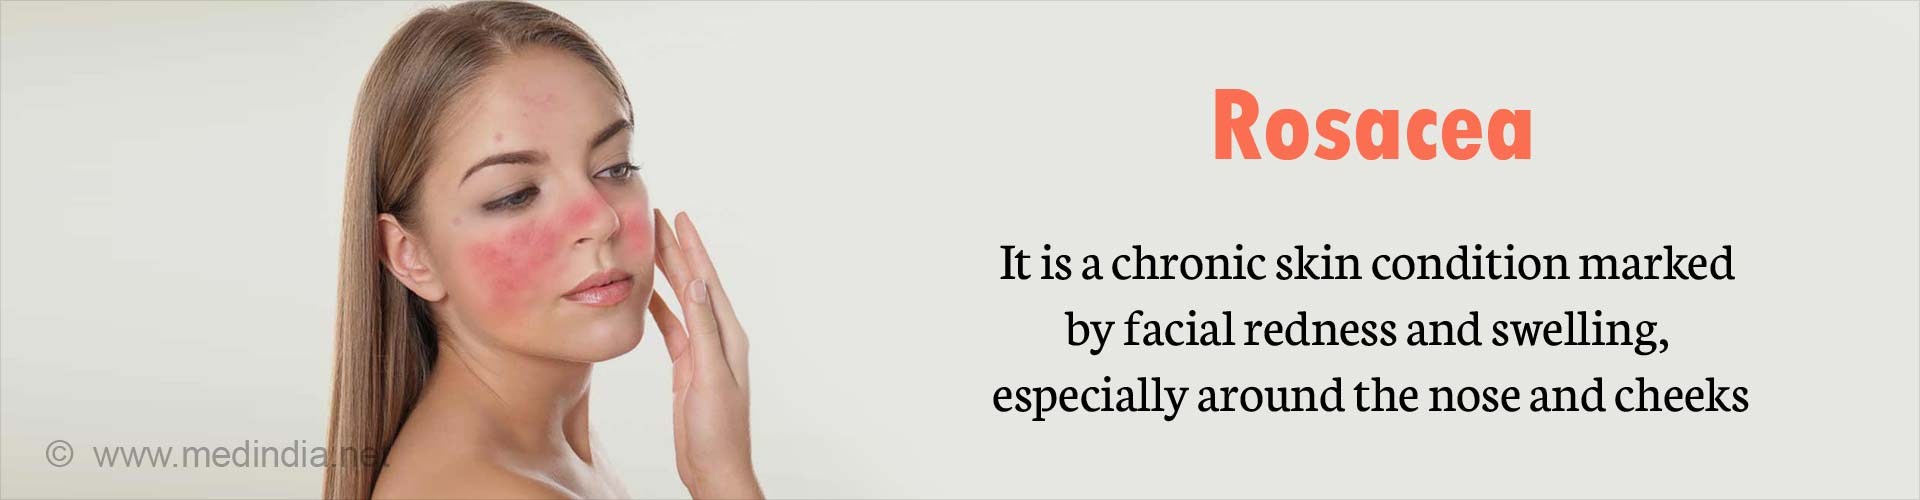 Rosacea - It is a chronic skin condition marked by facial redness and swelling, especially around the nose and cheeks